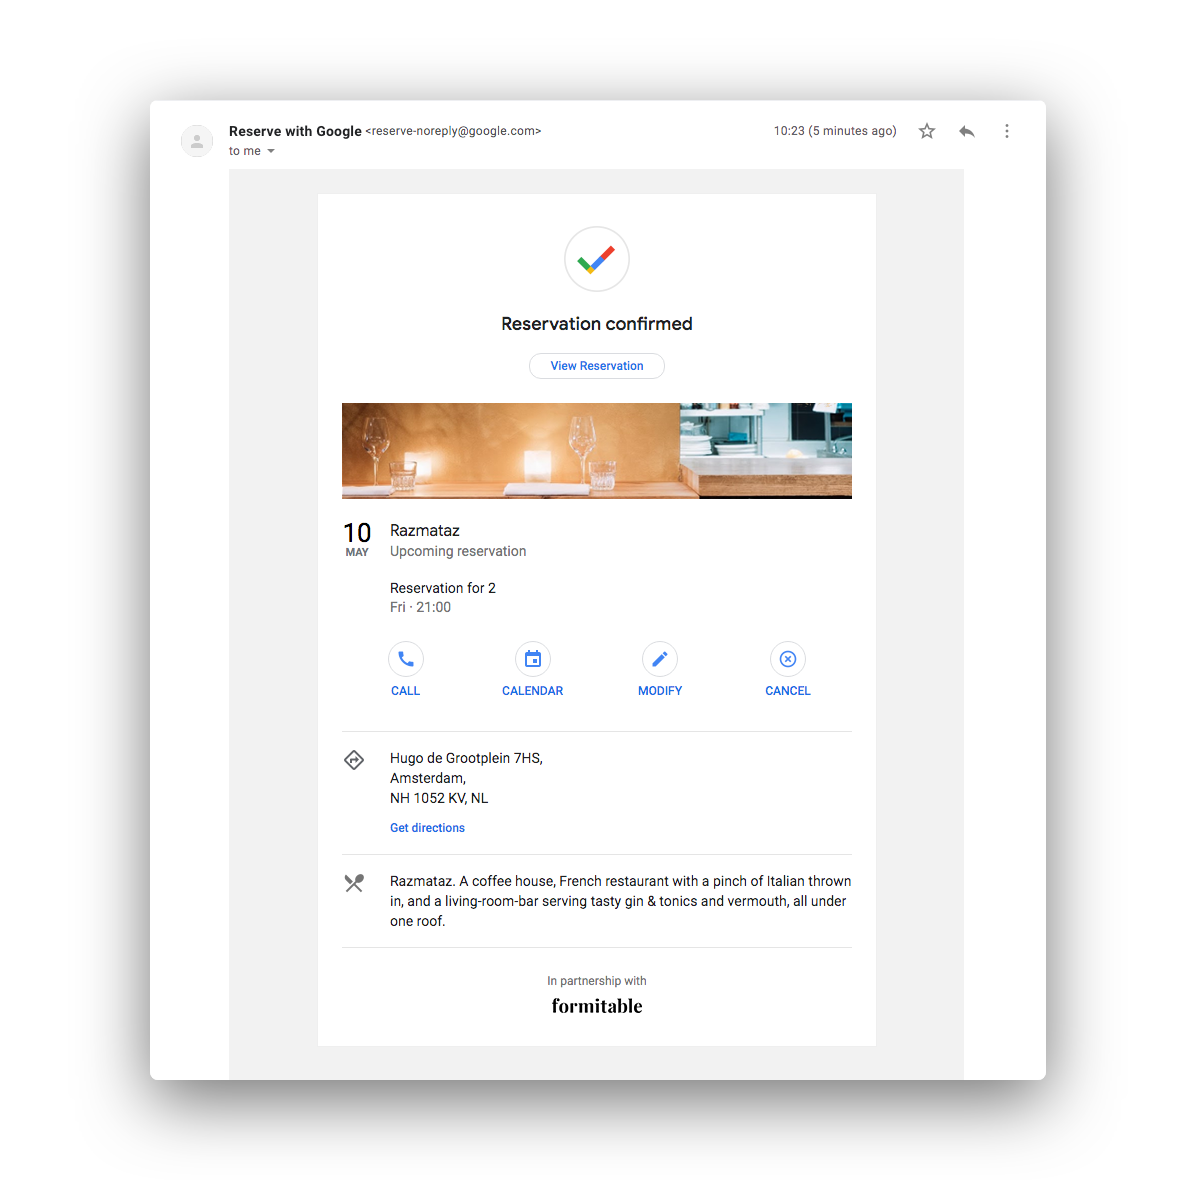 Reserve with Google booking confirmation email from Razmataz